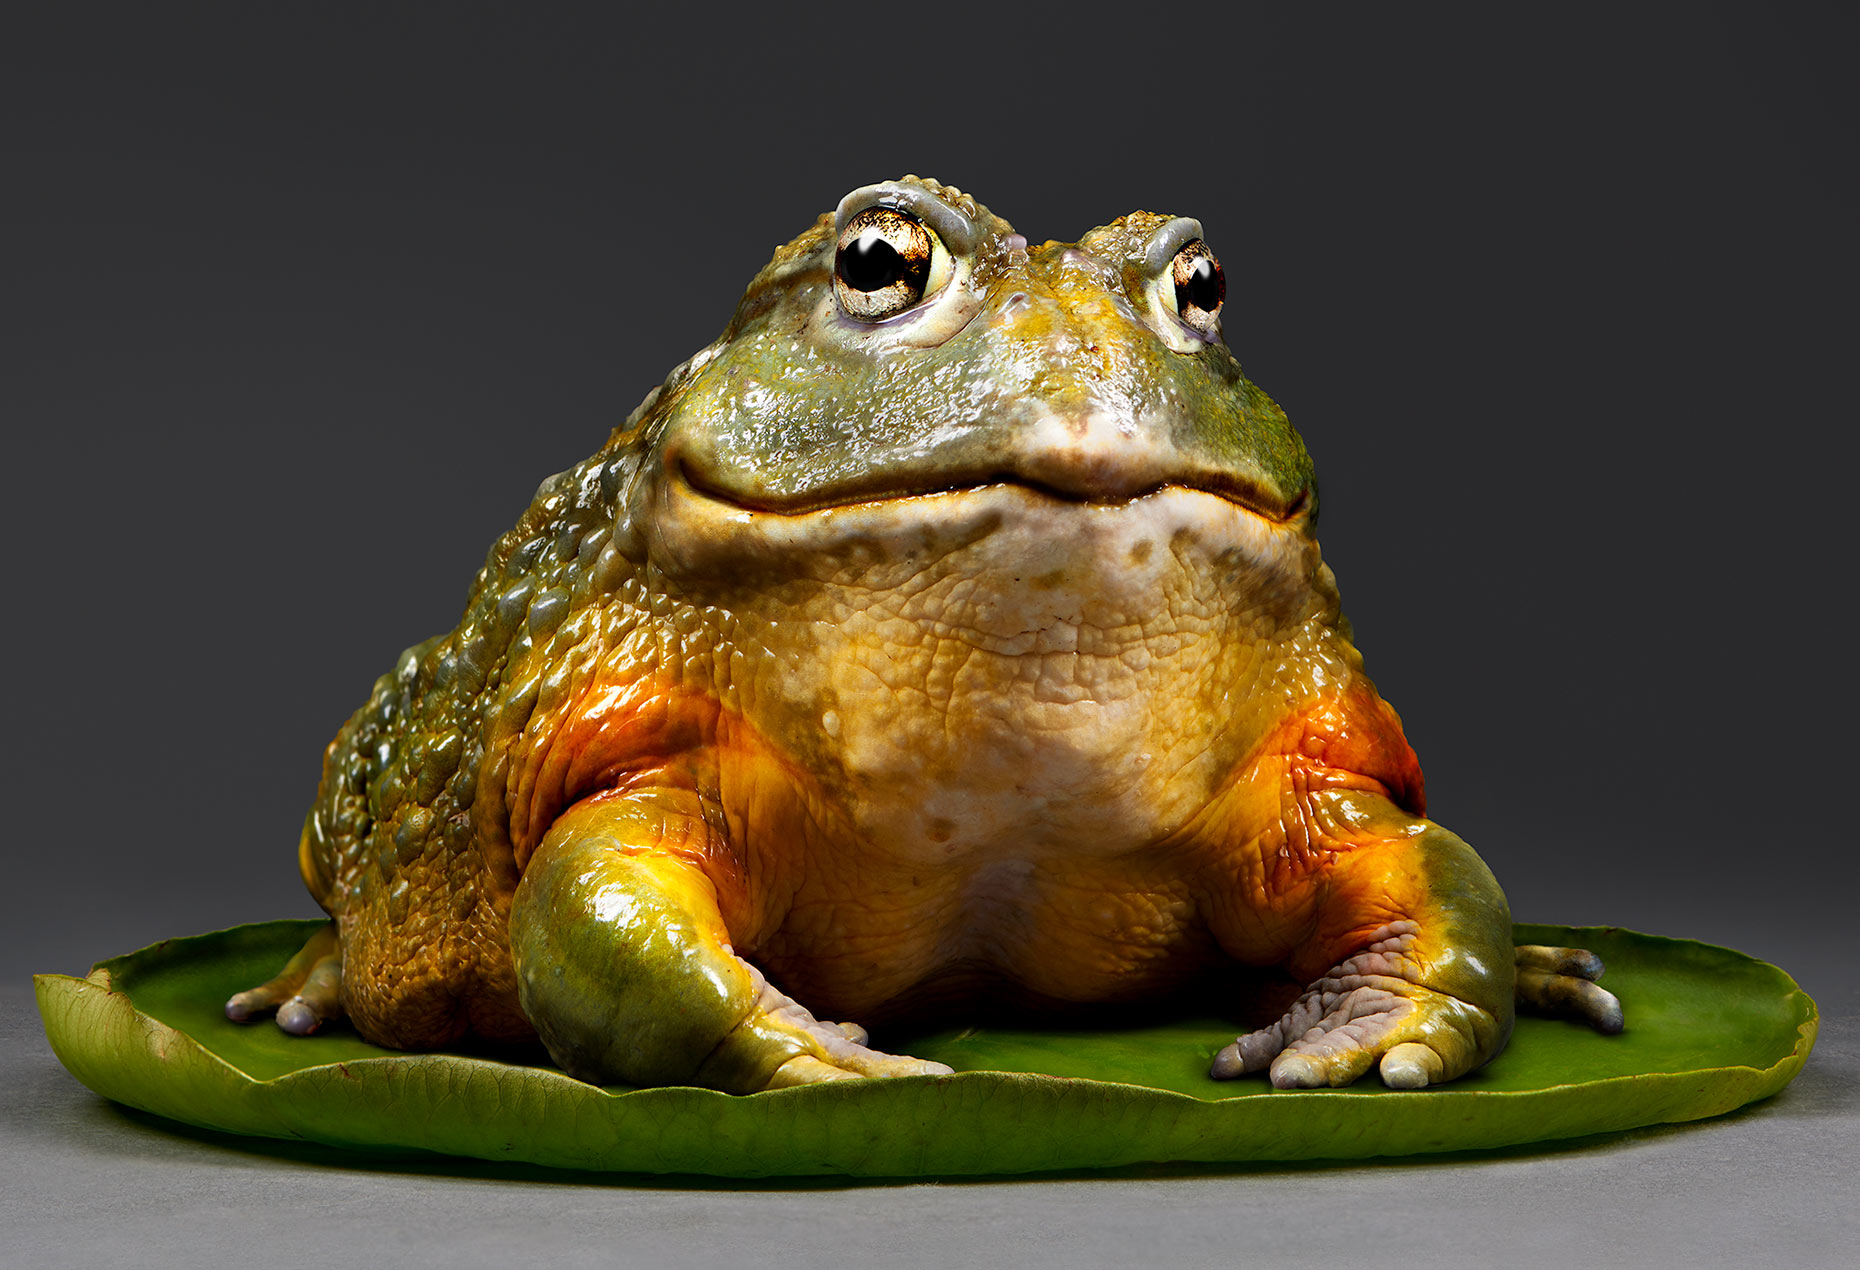 Oberman, a Pixie Frog photographed my commercial and fine art photographer, Peter Samuels, for his Fairy Tale Animals project.